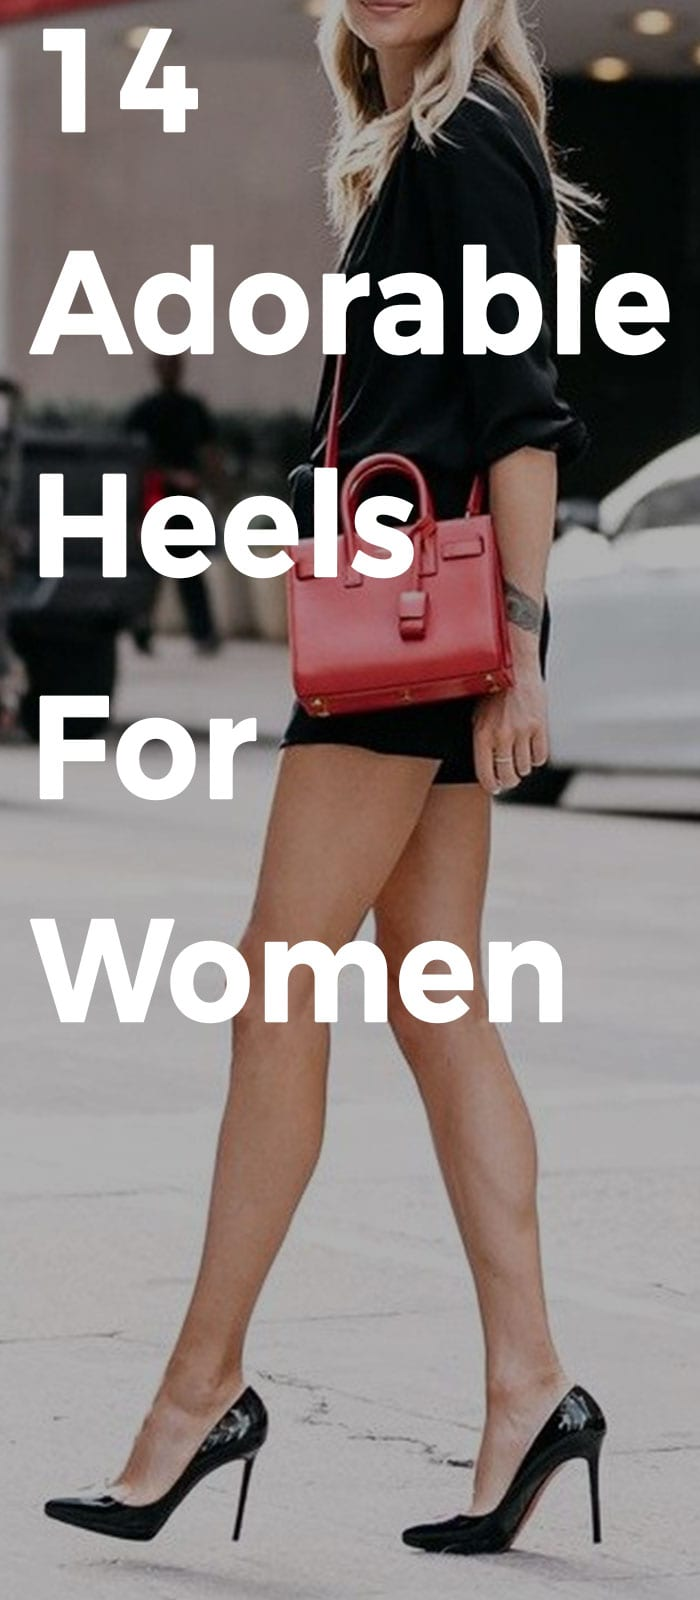 14 Adorable Heels To Complete Your Outfit!